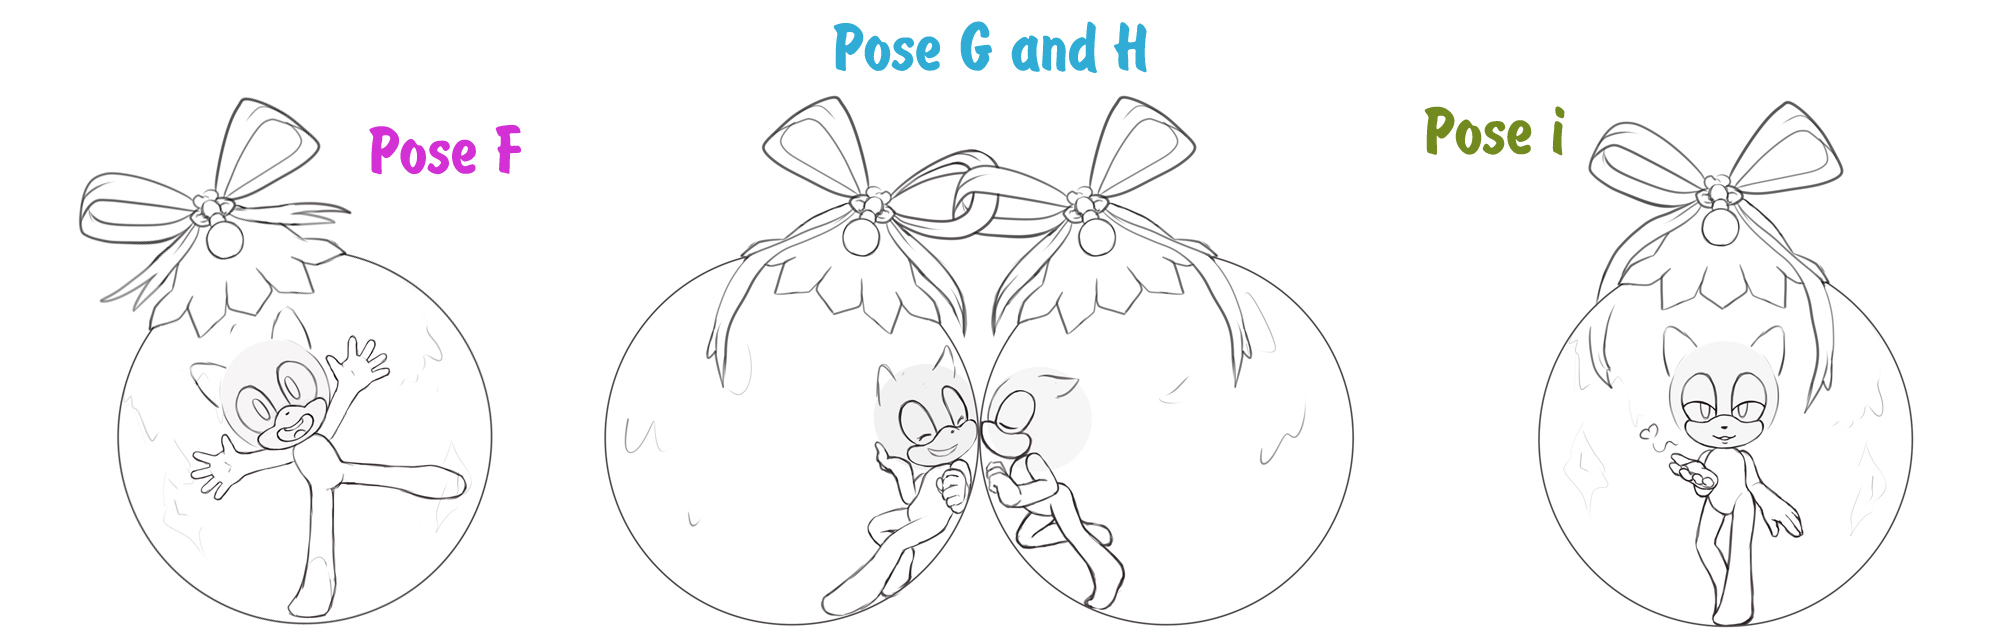 YCH OPEN - Christmas balls. Set 2 by KetLike on DeviantArt